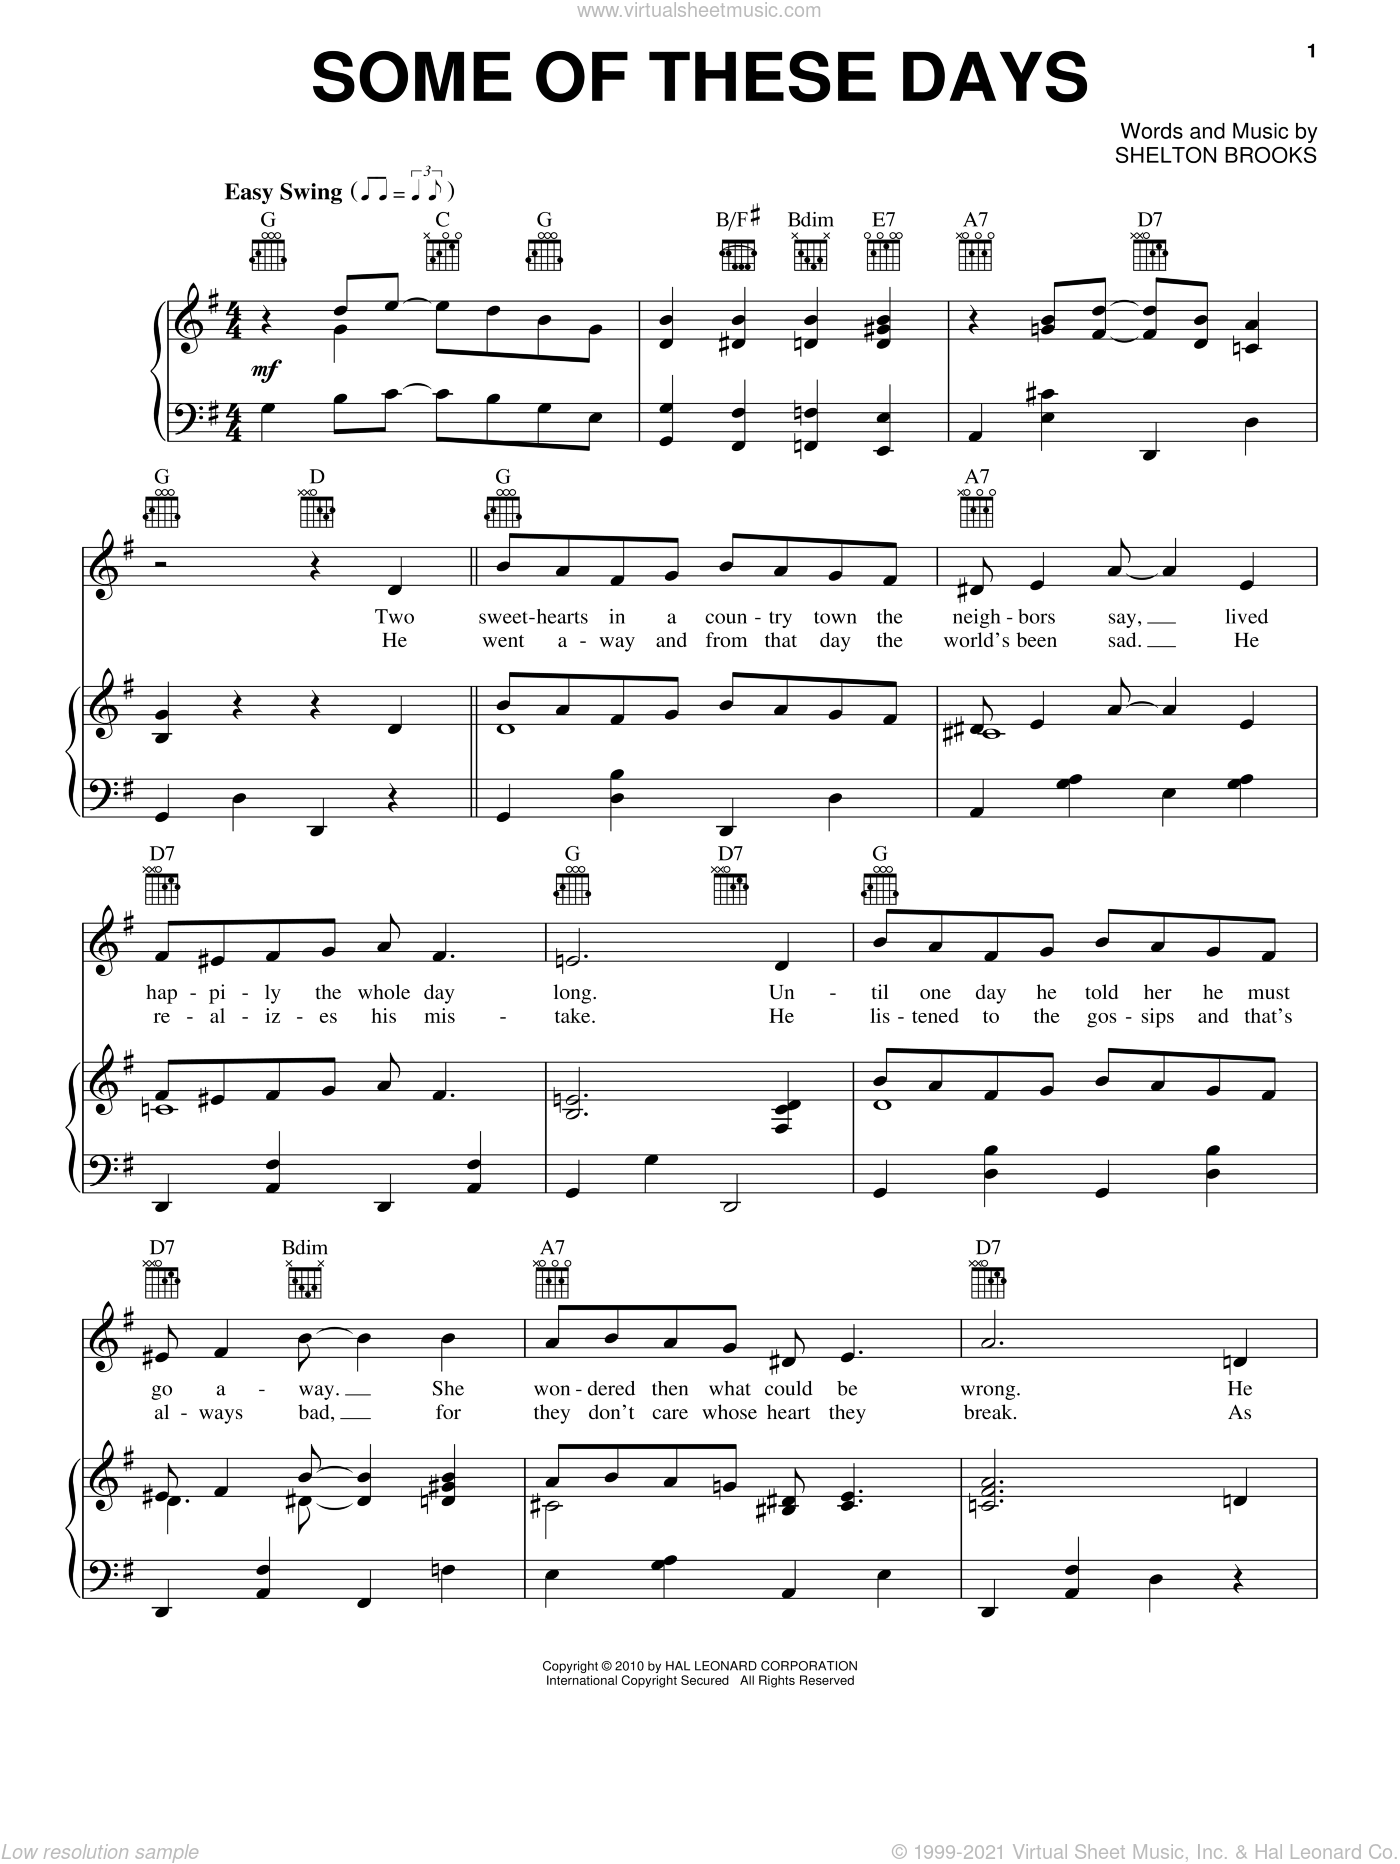 Some Of These Days sheet music for voice, piano or guitar by Shelton Brooks